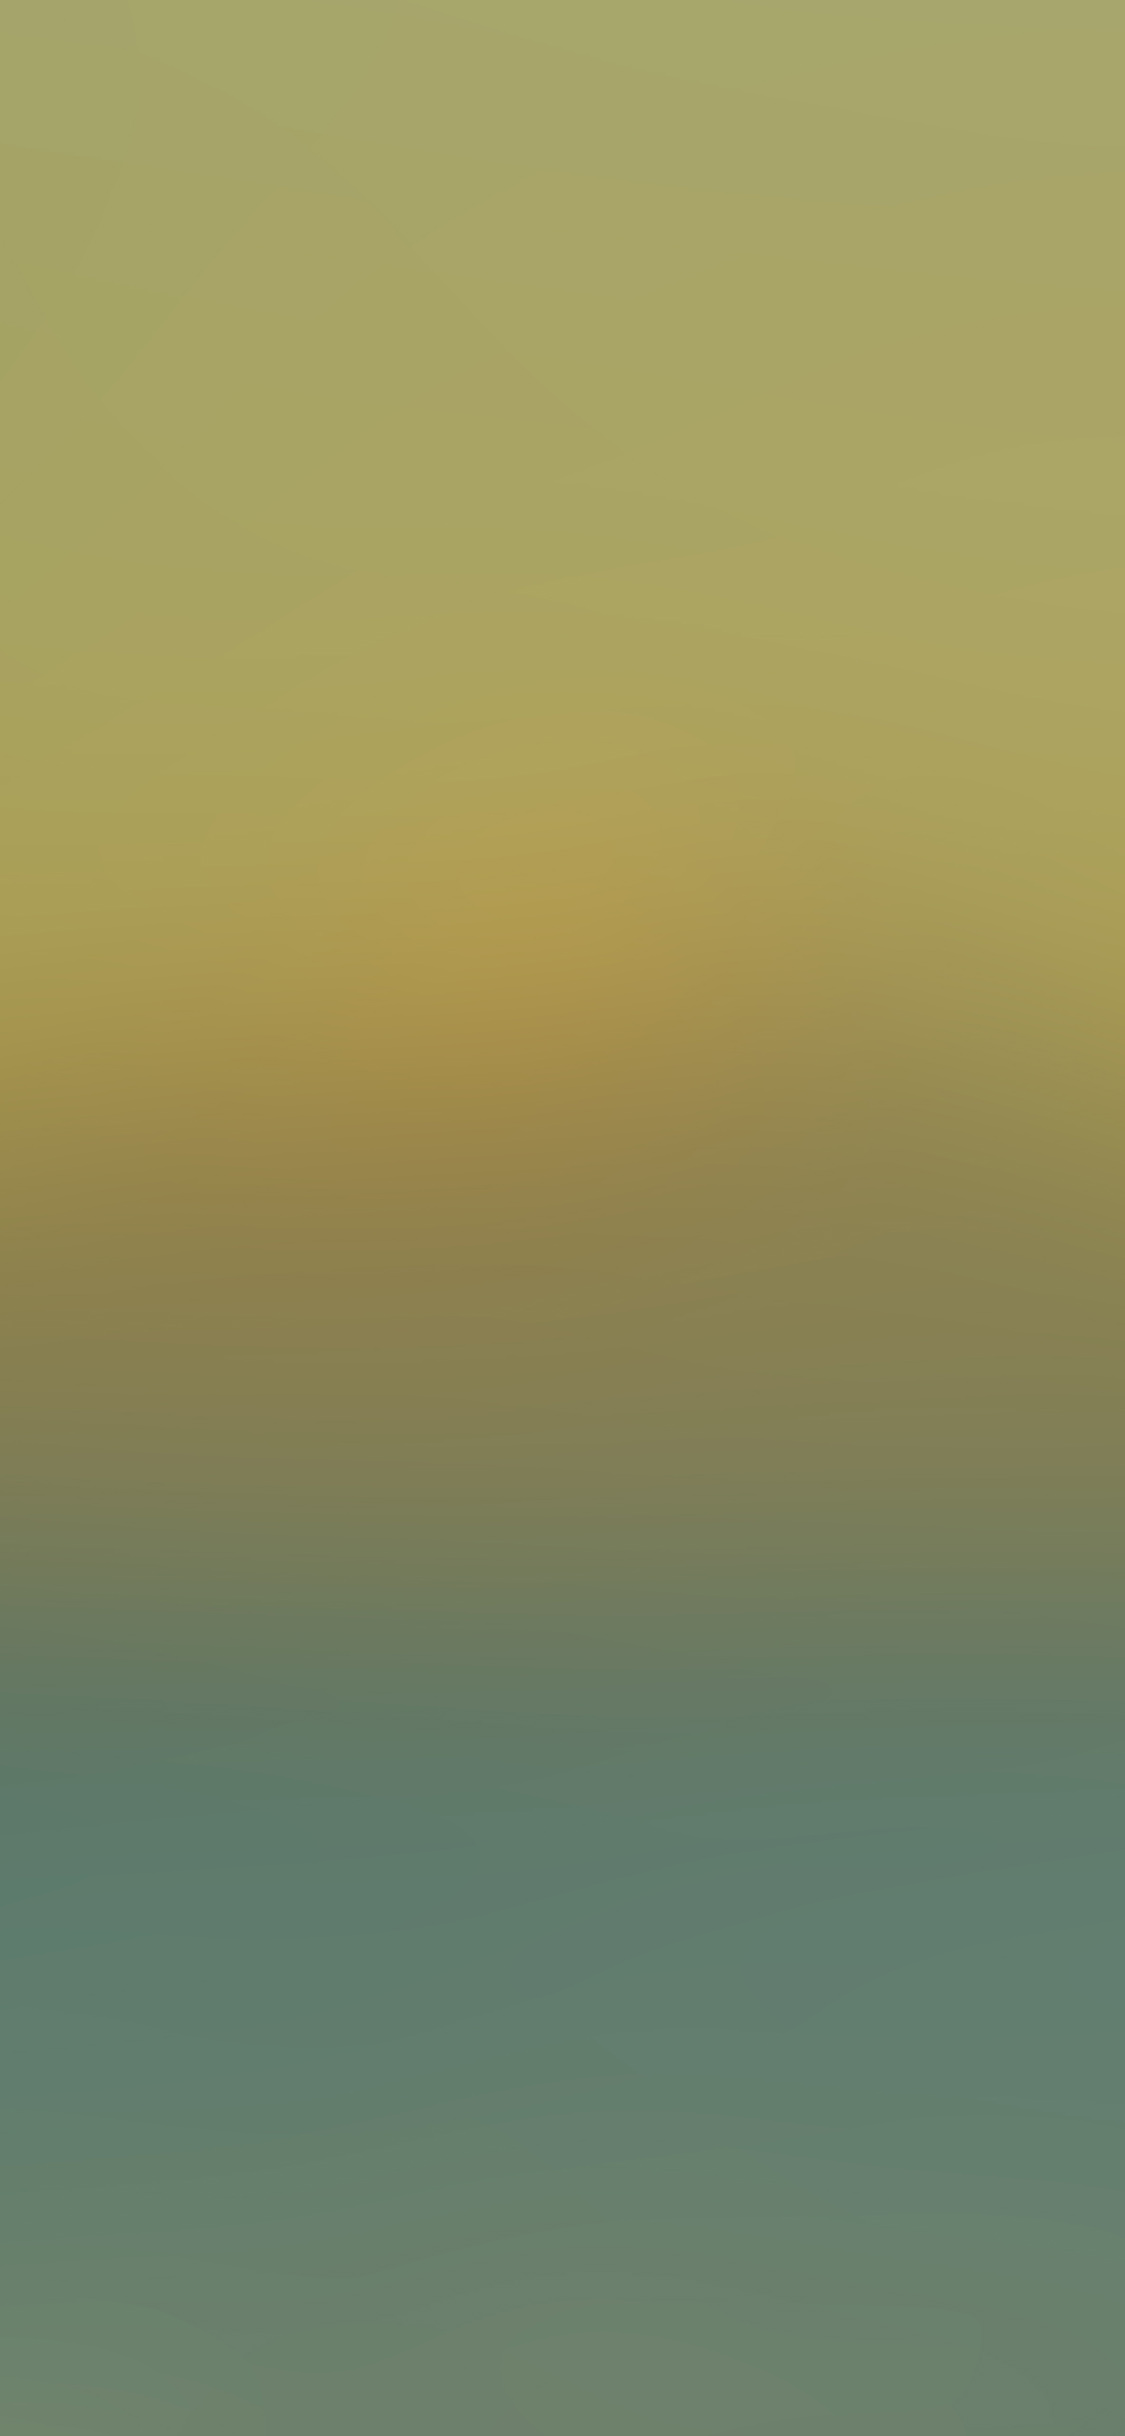 iPhoneXpapers.com-Apple-iPhone-wallpaper-sf48-yellow-green-soft-gradation-blur